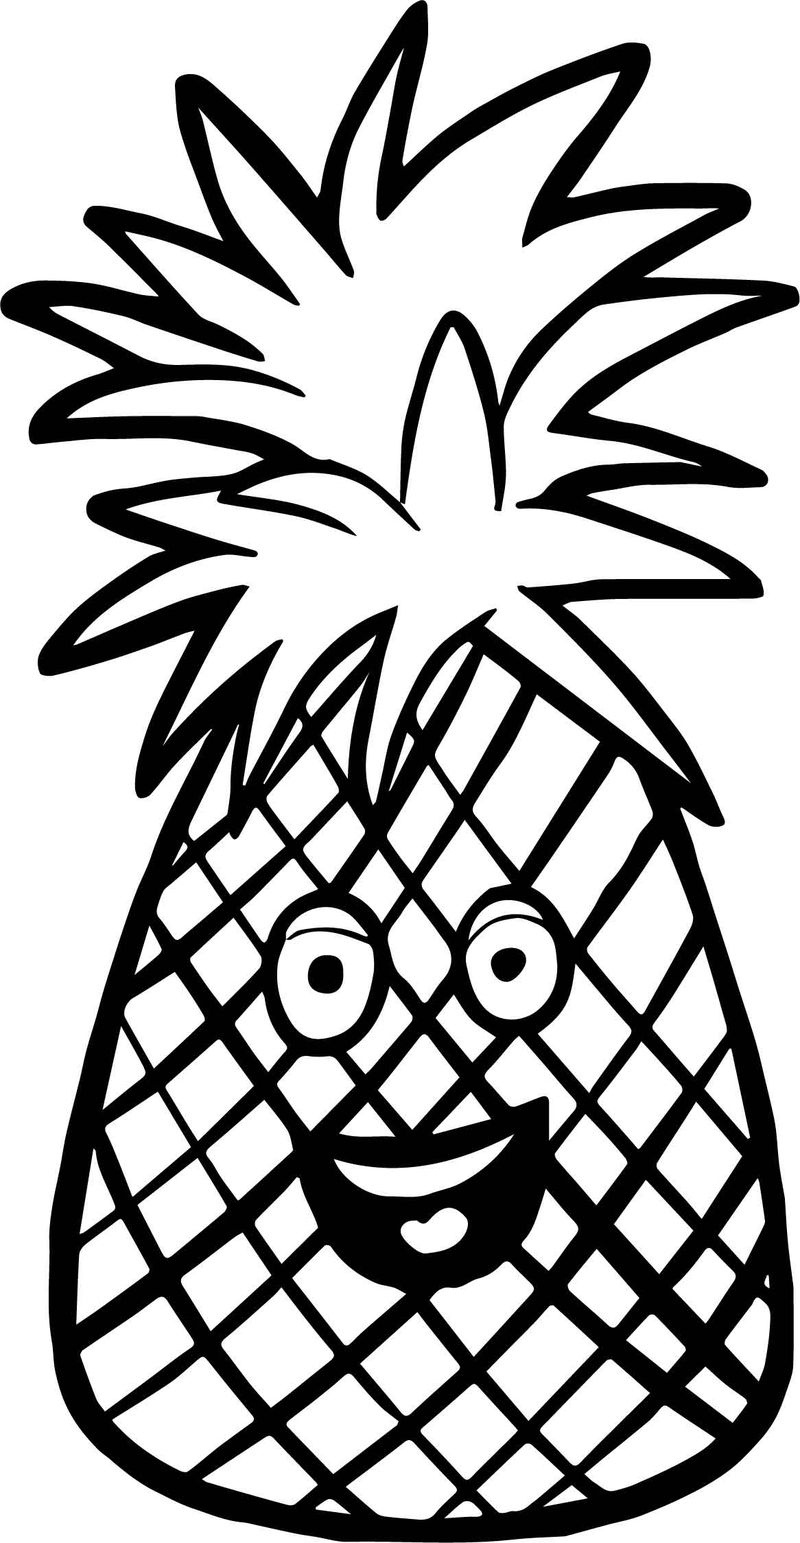 Pineapple Fruit Coloring Page